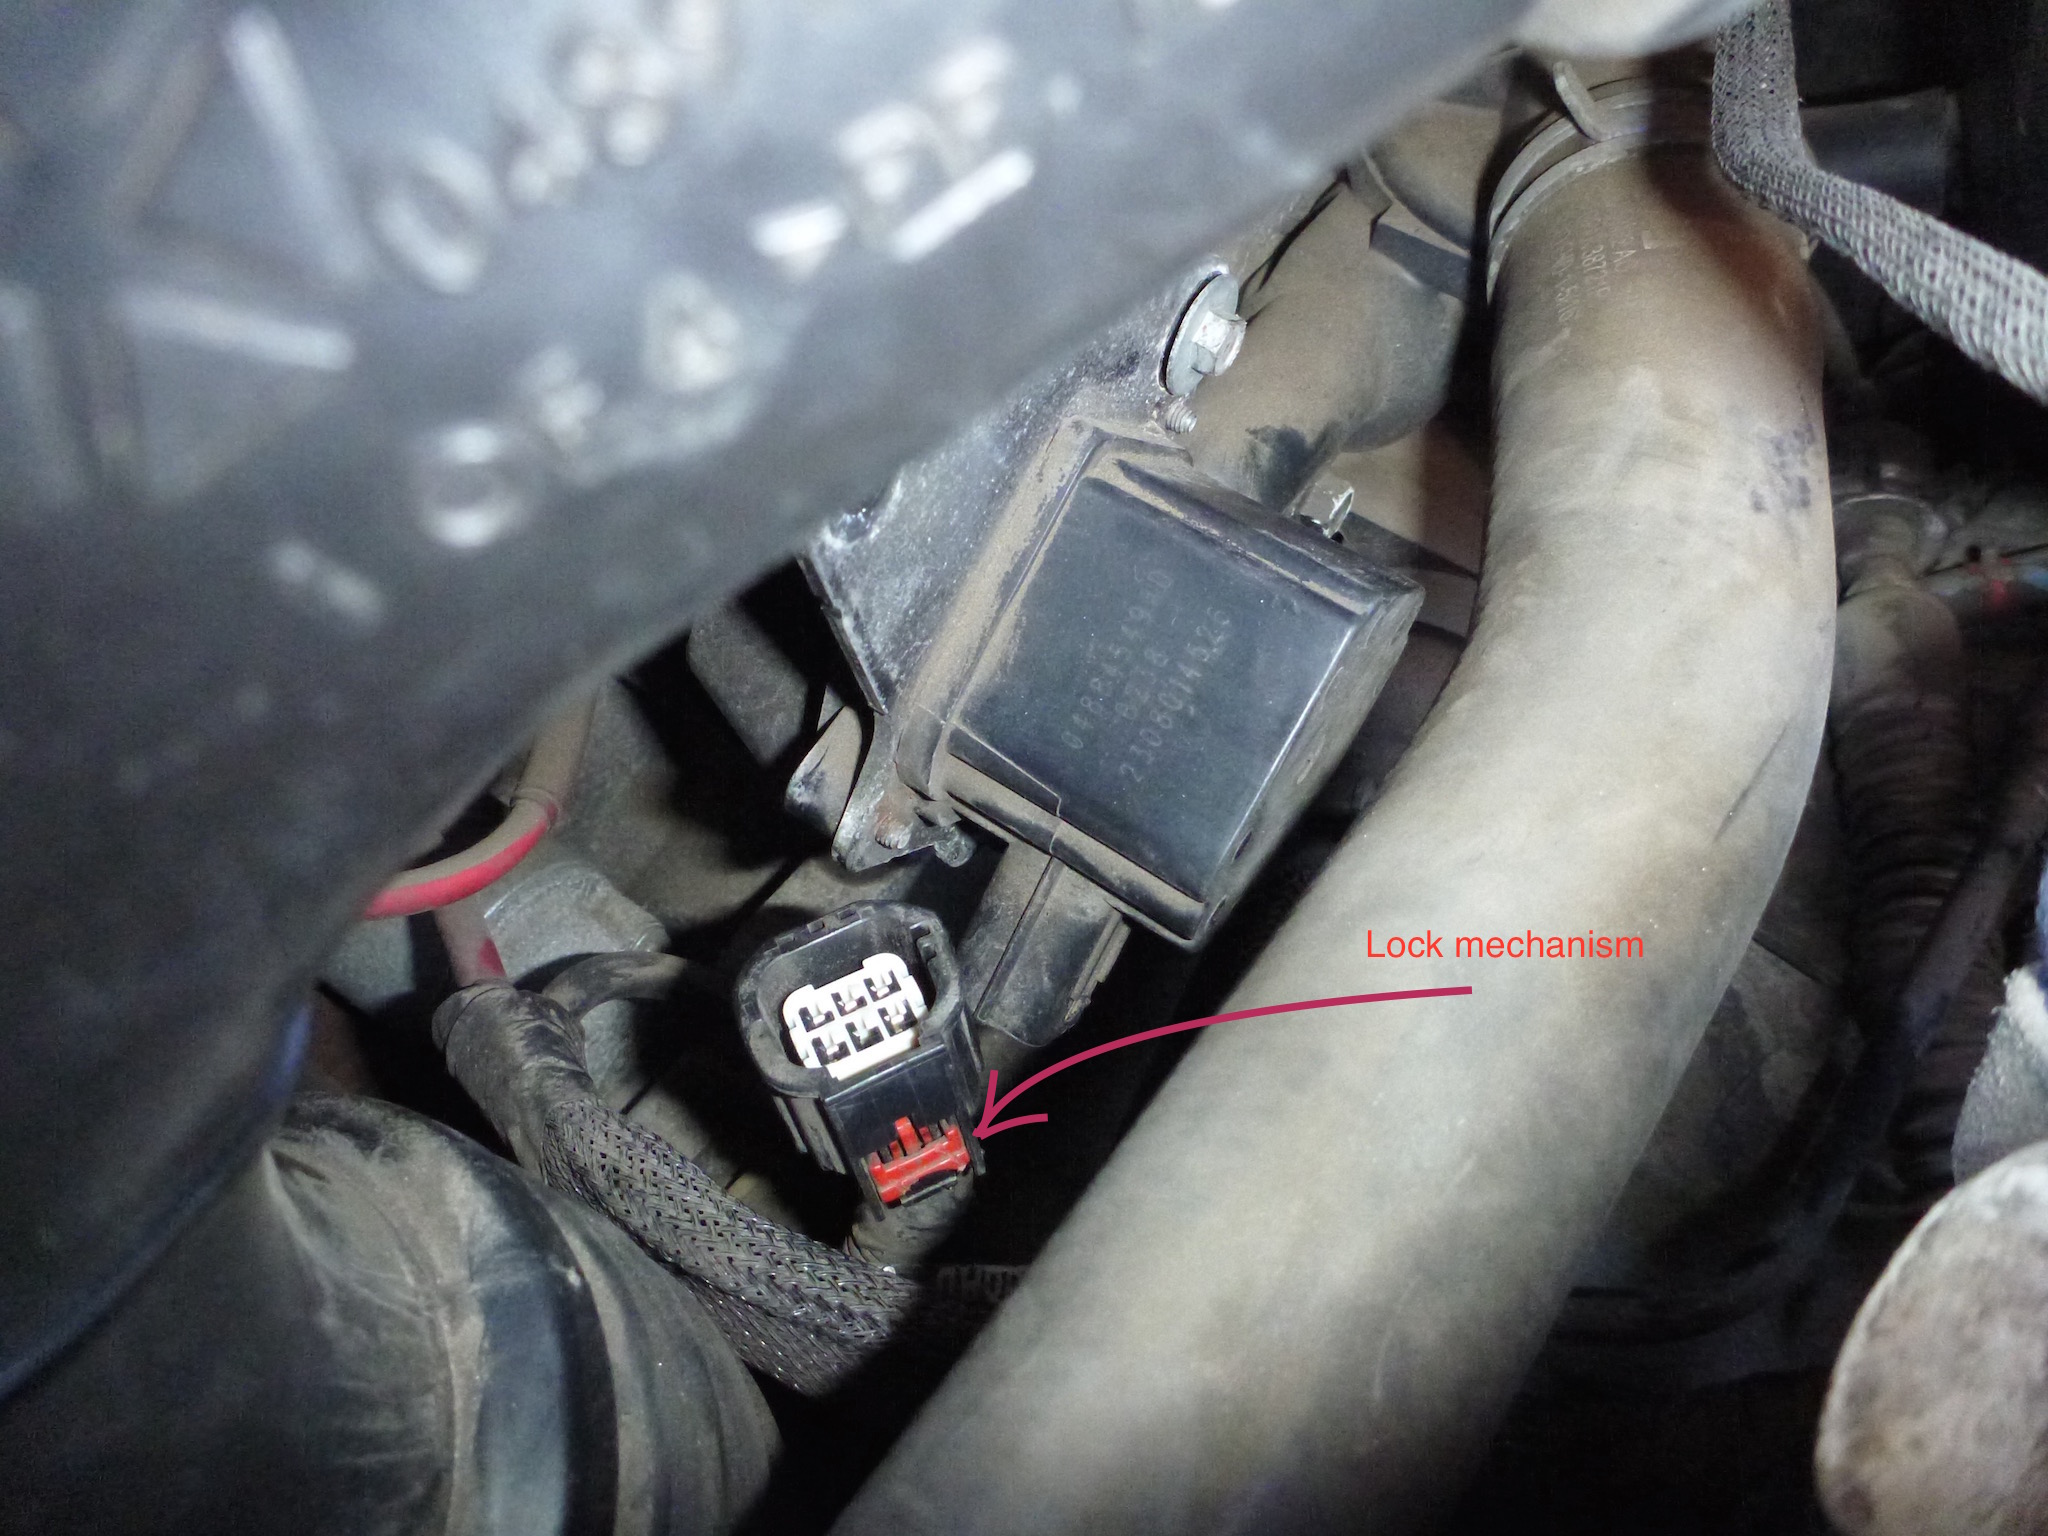 HG0o 13314 further 2005 Chrysler Town And Country Touring Fuse Box Location furthermore 2015 Chrysler 200 Fuse Box Diagram as well Watch additionally 2017 Second Hand P0406 Chrysler 300 Price. on 2006 chrysler 300 fuse location